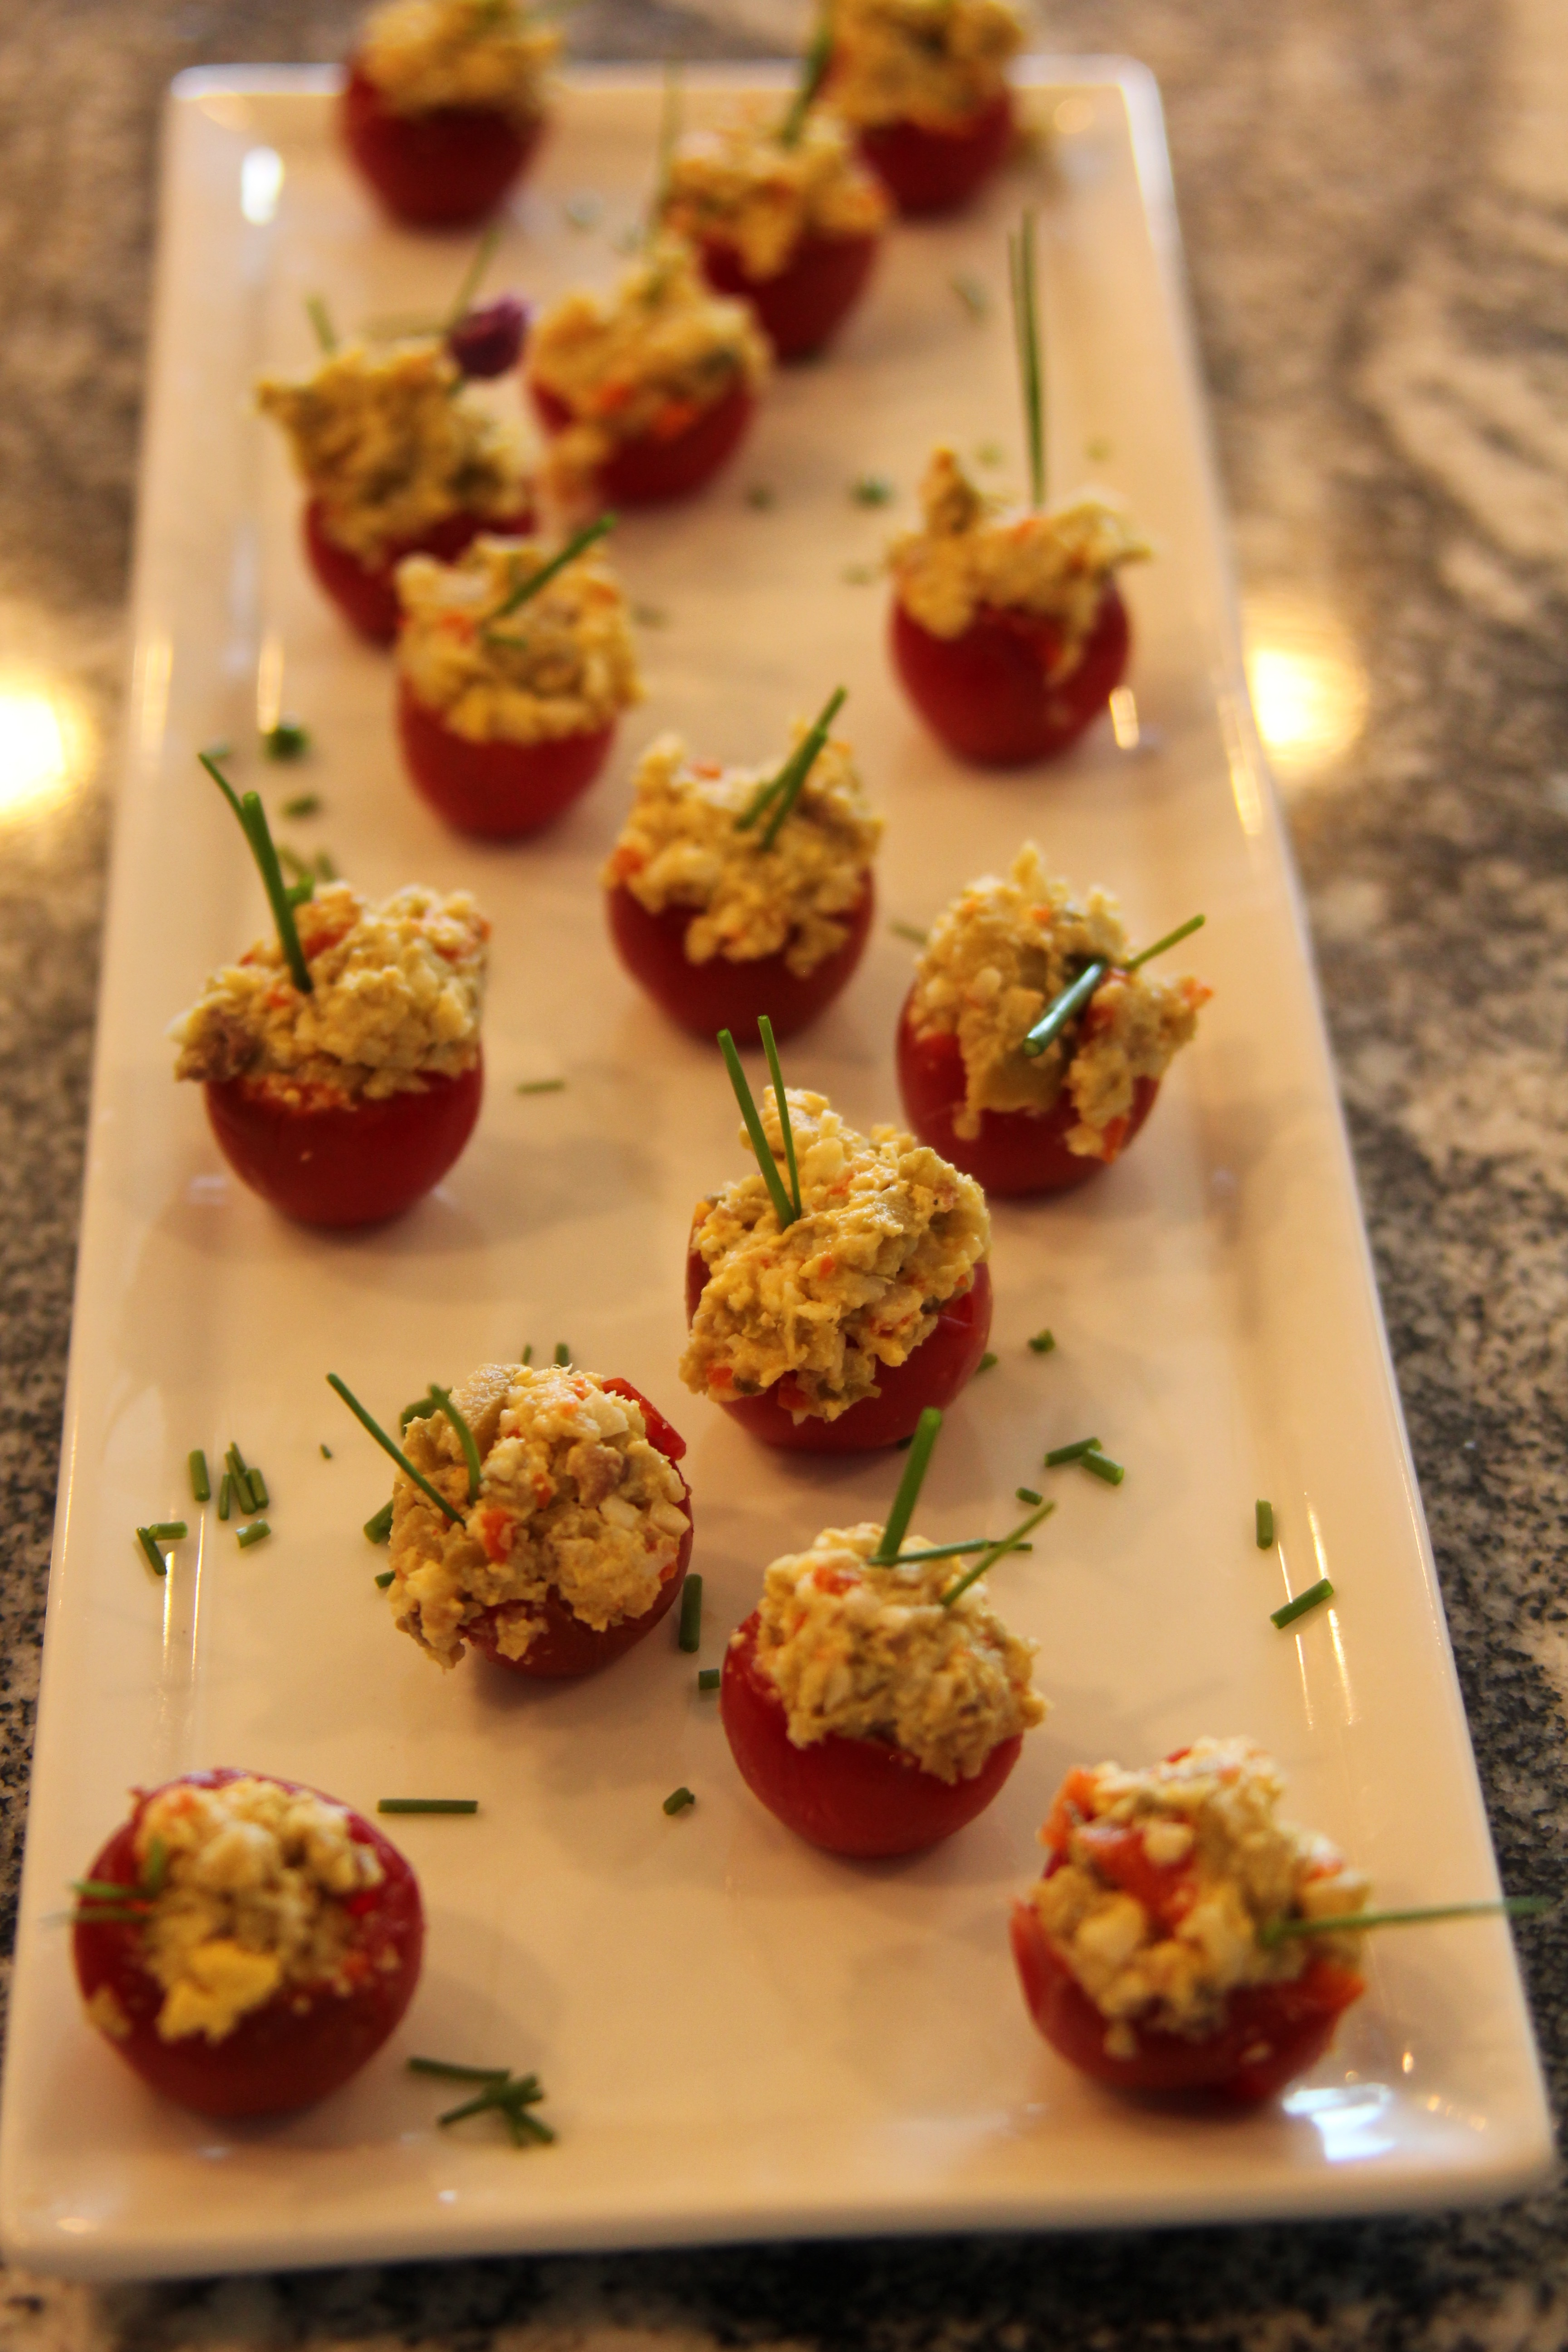 Stuffed Cherry tomatoes with Anchovy & Olive filling